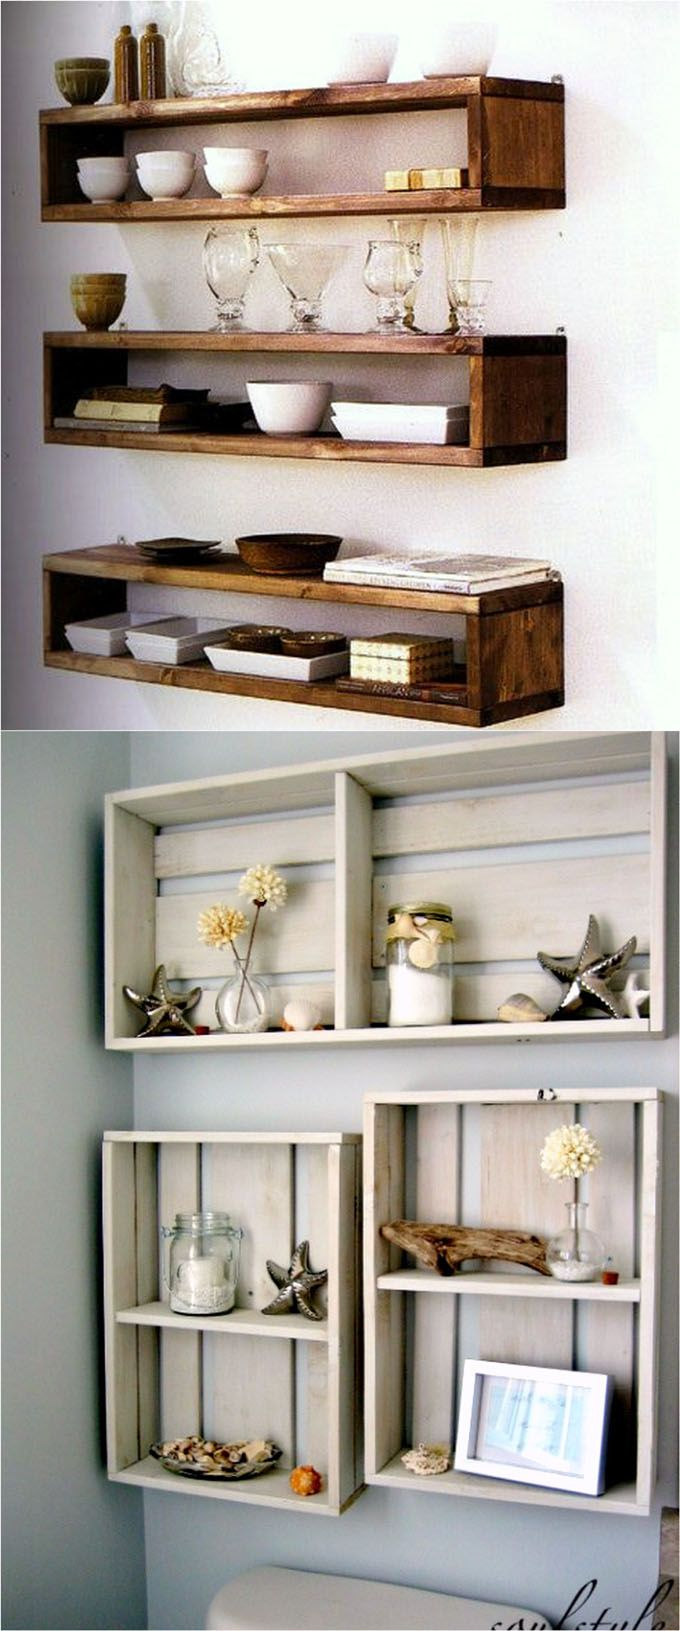 Best 25 wall shelves ideas on pinterest shelves corner shelf 16 easy and stylish diy floating shelves wall shelves amipublicfo Choice Image